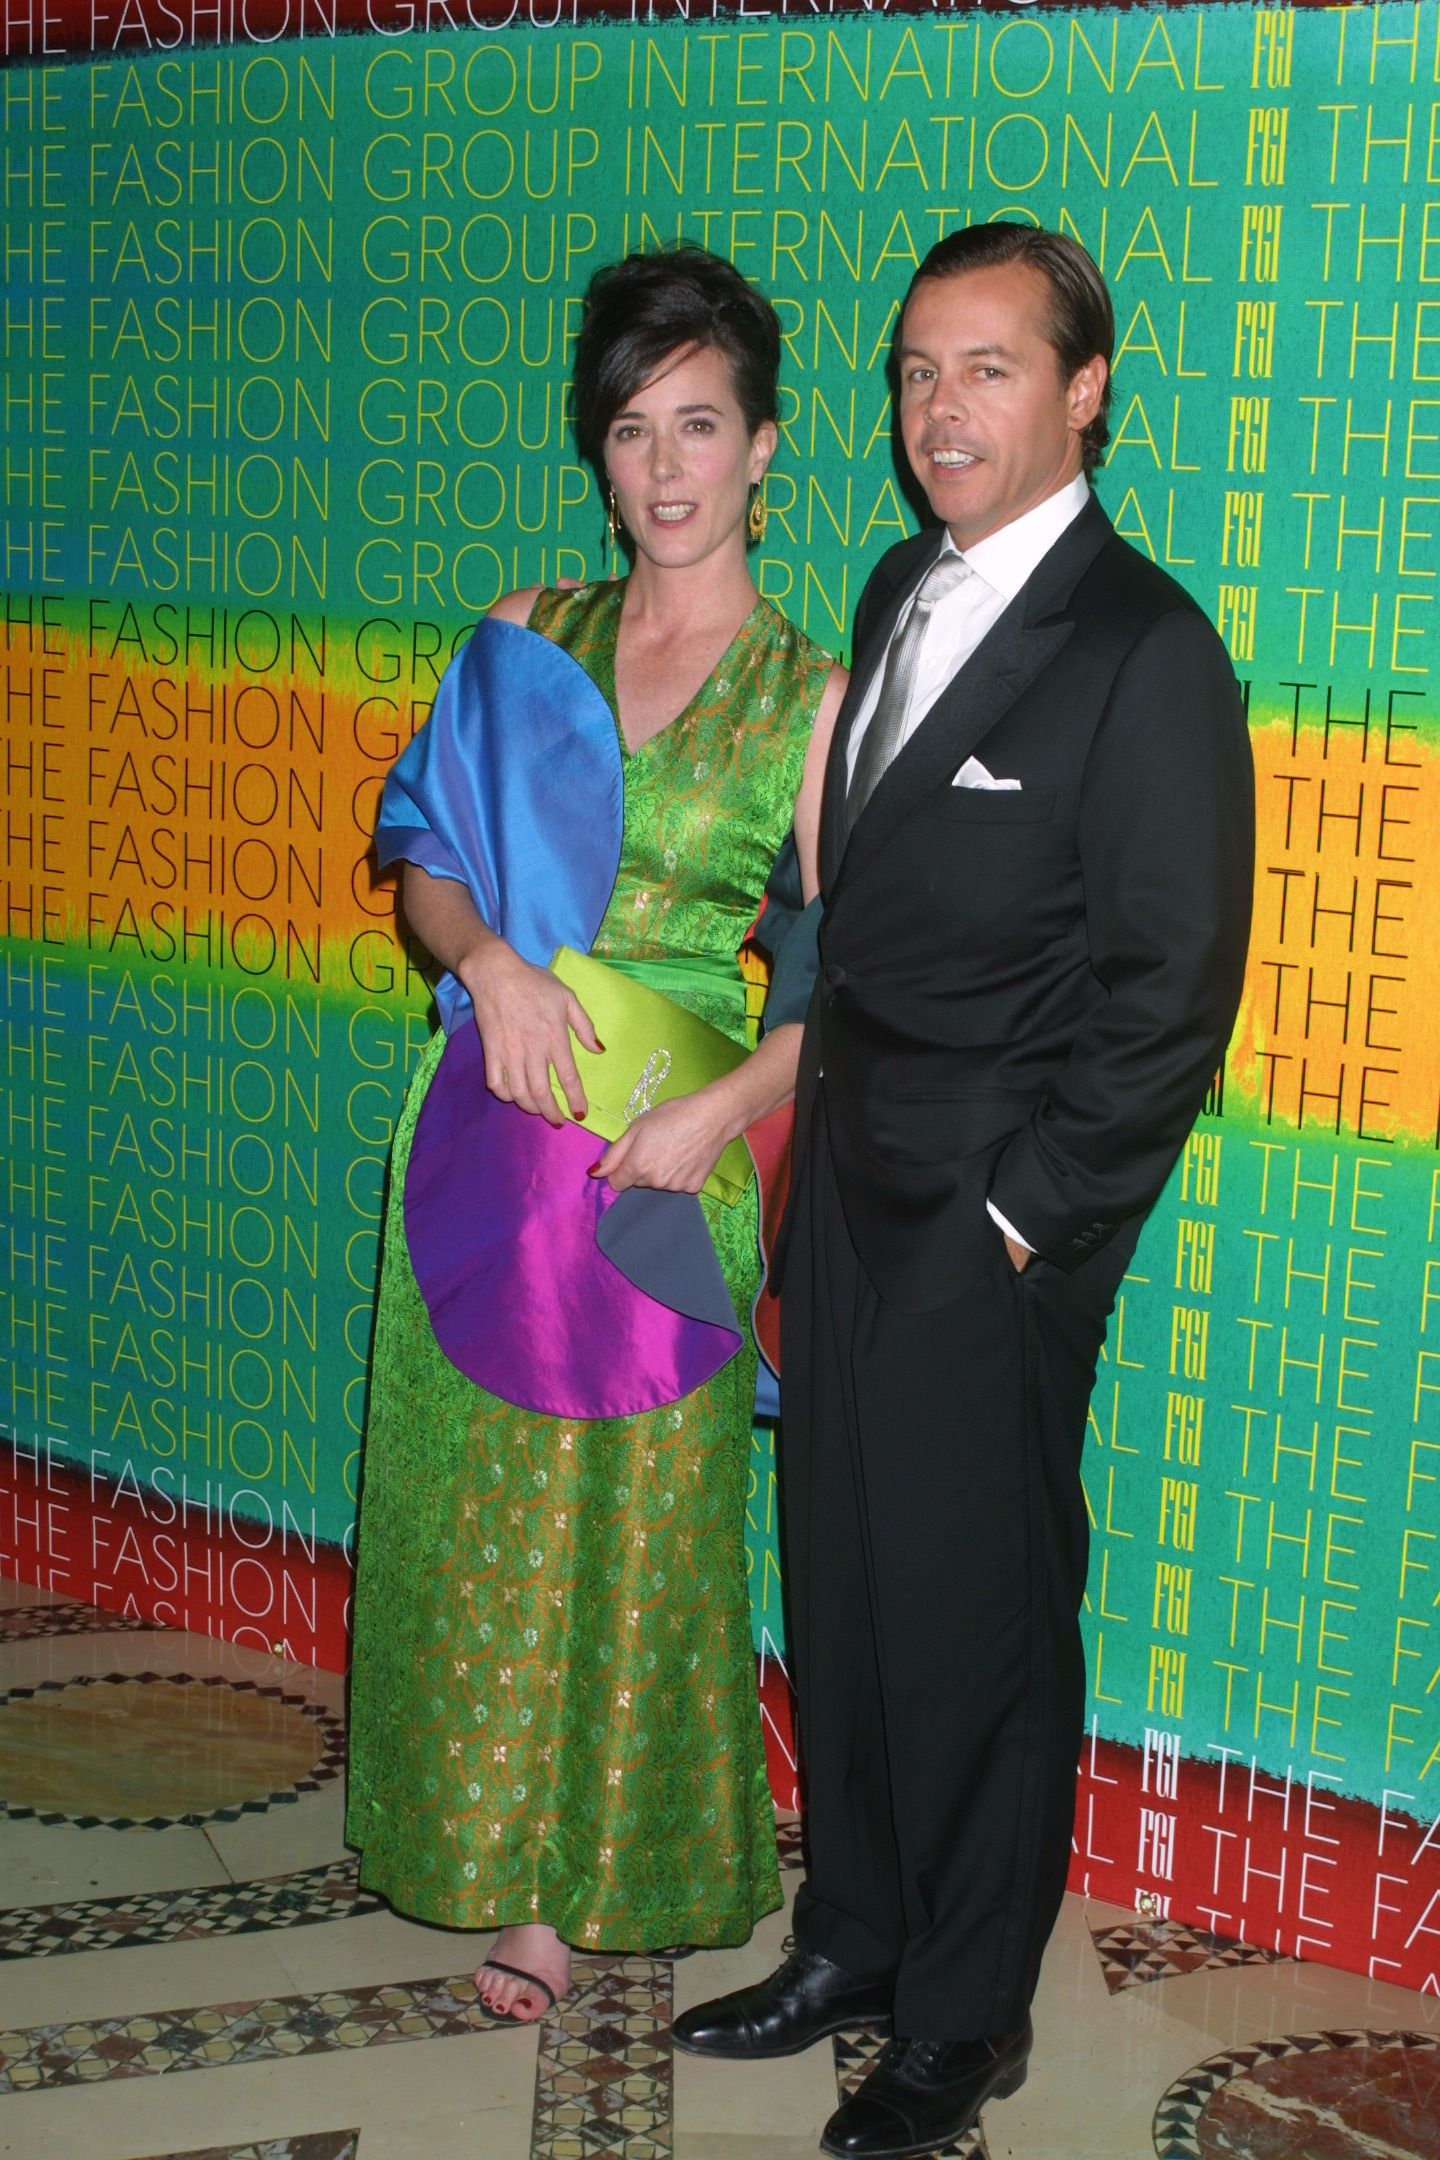 "<div class=""meta image-caption""><div class=""origin-logo origin-image none""><span>none</span></div><span class=""caption-text"">Kate Spade and husband at the 18th Annual Night of Stars Fashion Group International Cipriani in 2001. (Matt Baron/BEI/REX/Shutterstock)</span></div>"